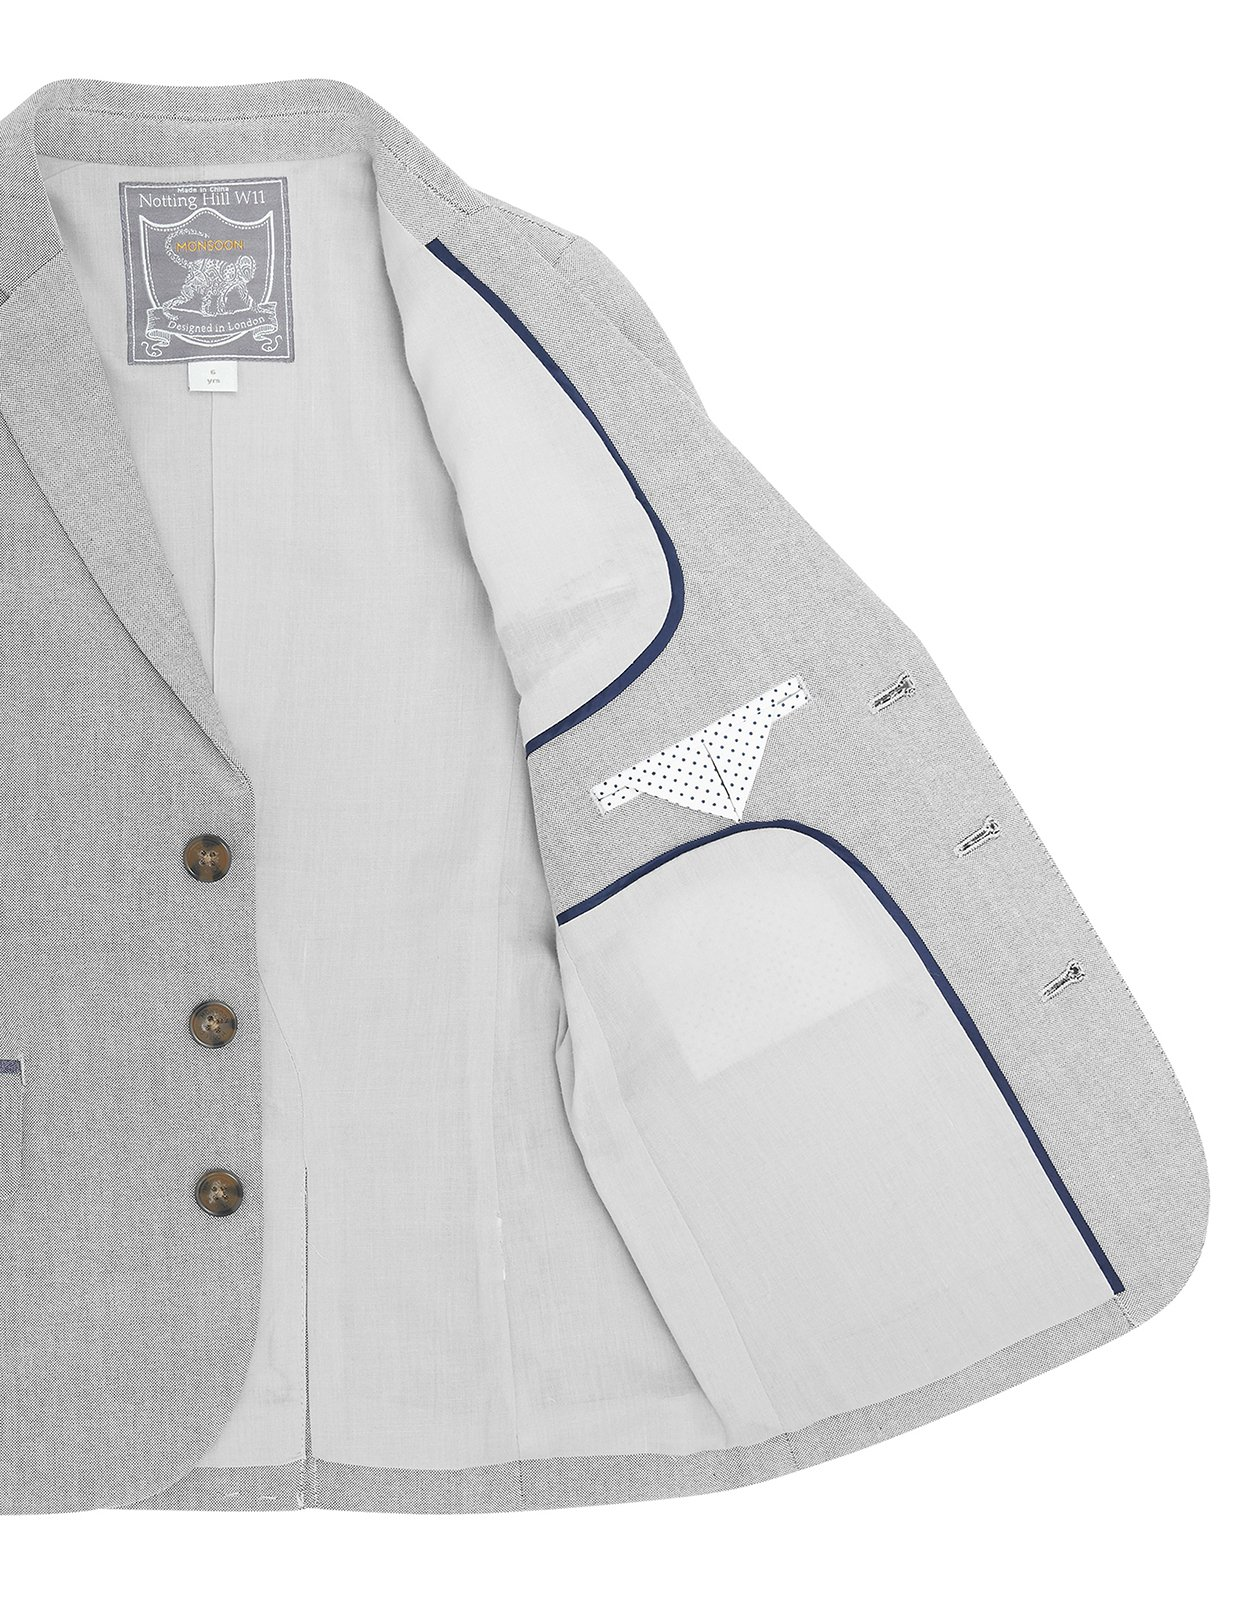 Sterling 5PC Suit Set - boys - 9 Years